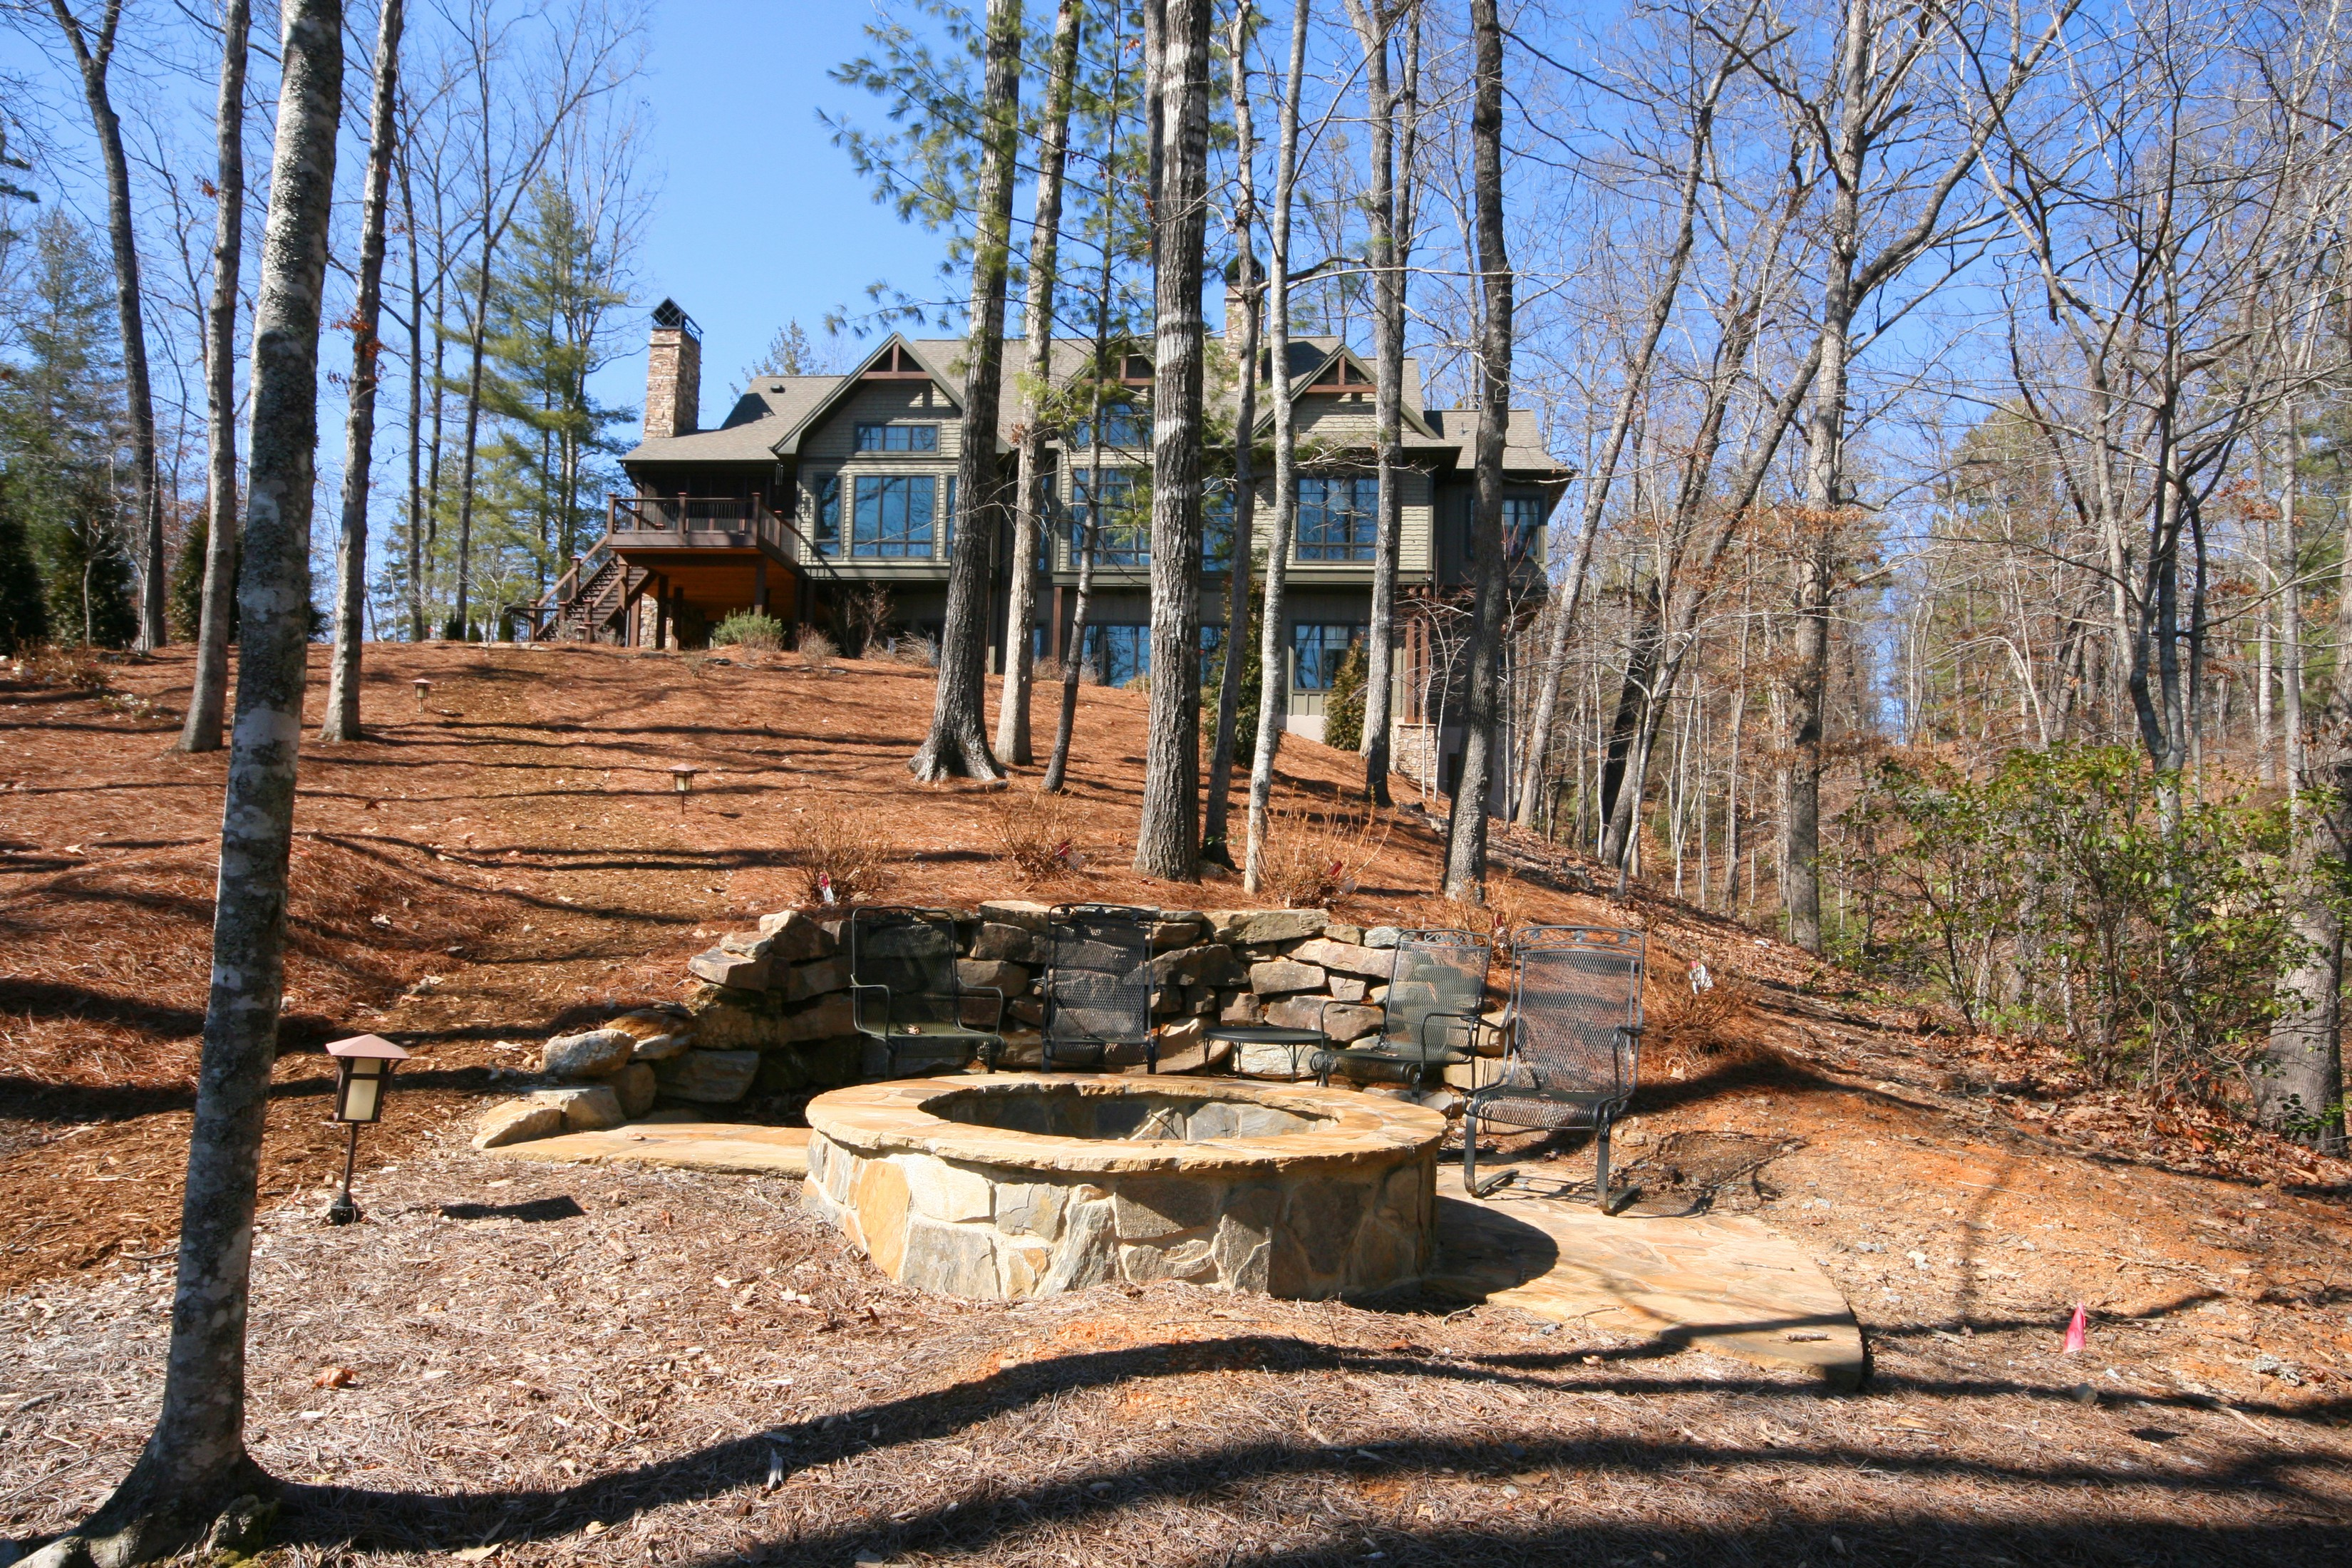 Single Family Home for Sale at Sublime Home on Prestige Waterfront Lot With State Park Views 206 Feather Bells Lane The Cliffs At Keowee Vineyards, Sunset, South Carolina, 29685 United States